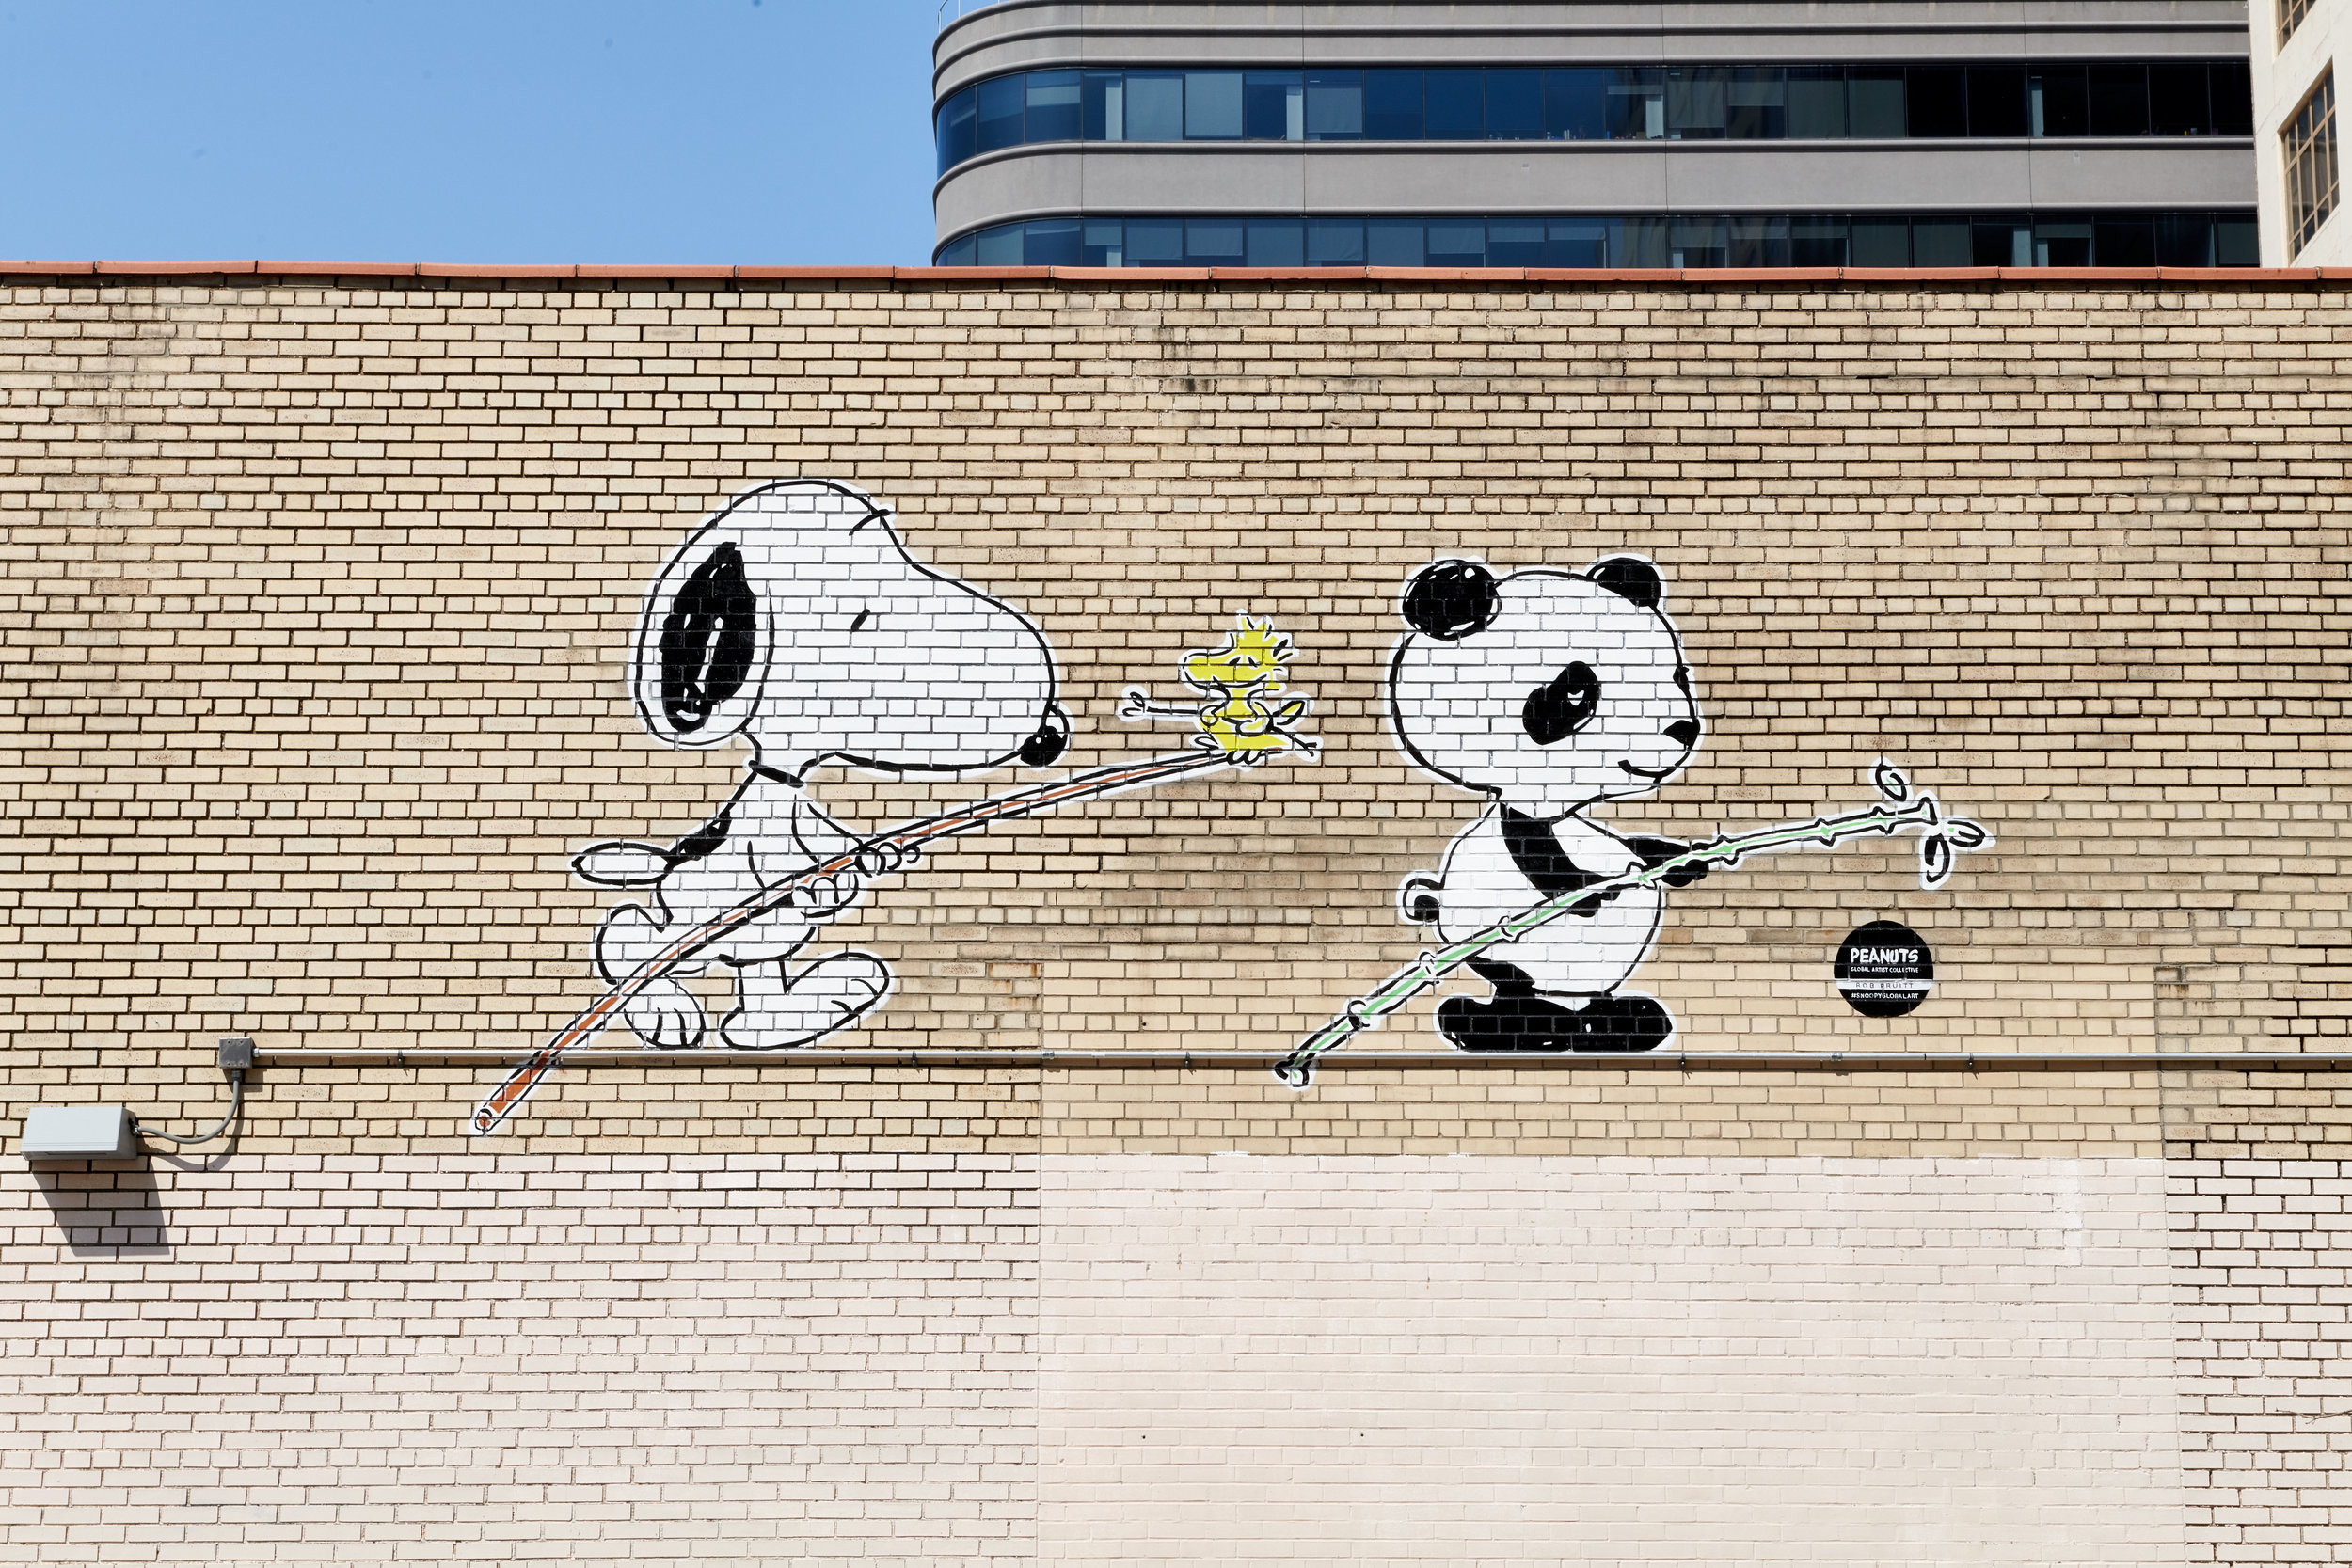 Rob Pruitt x Peanuts Global Artist Collective in New York City